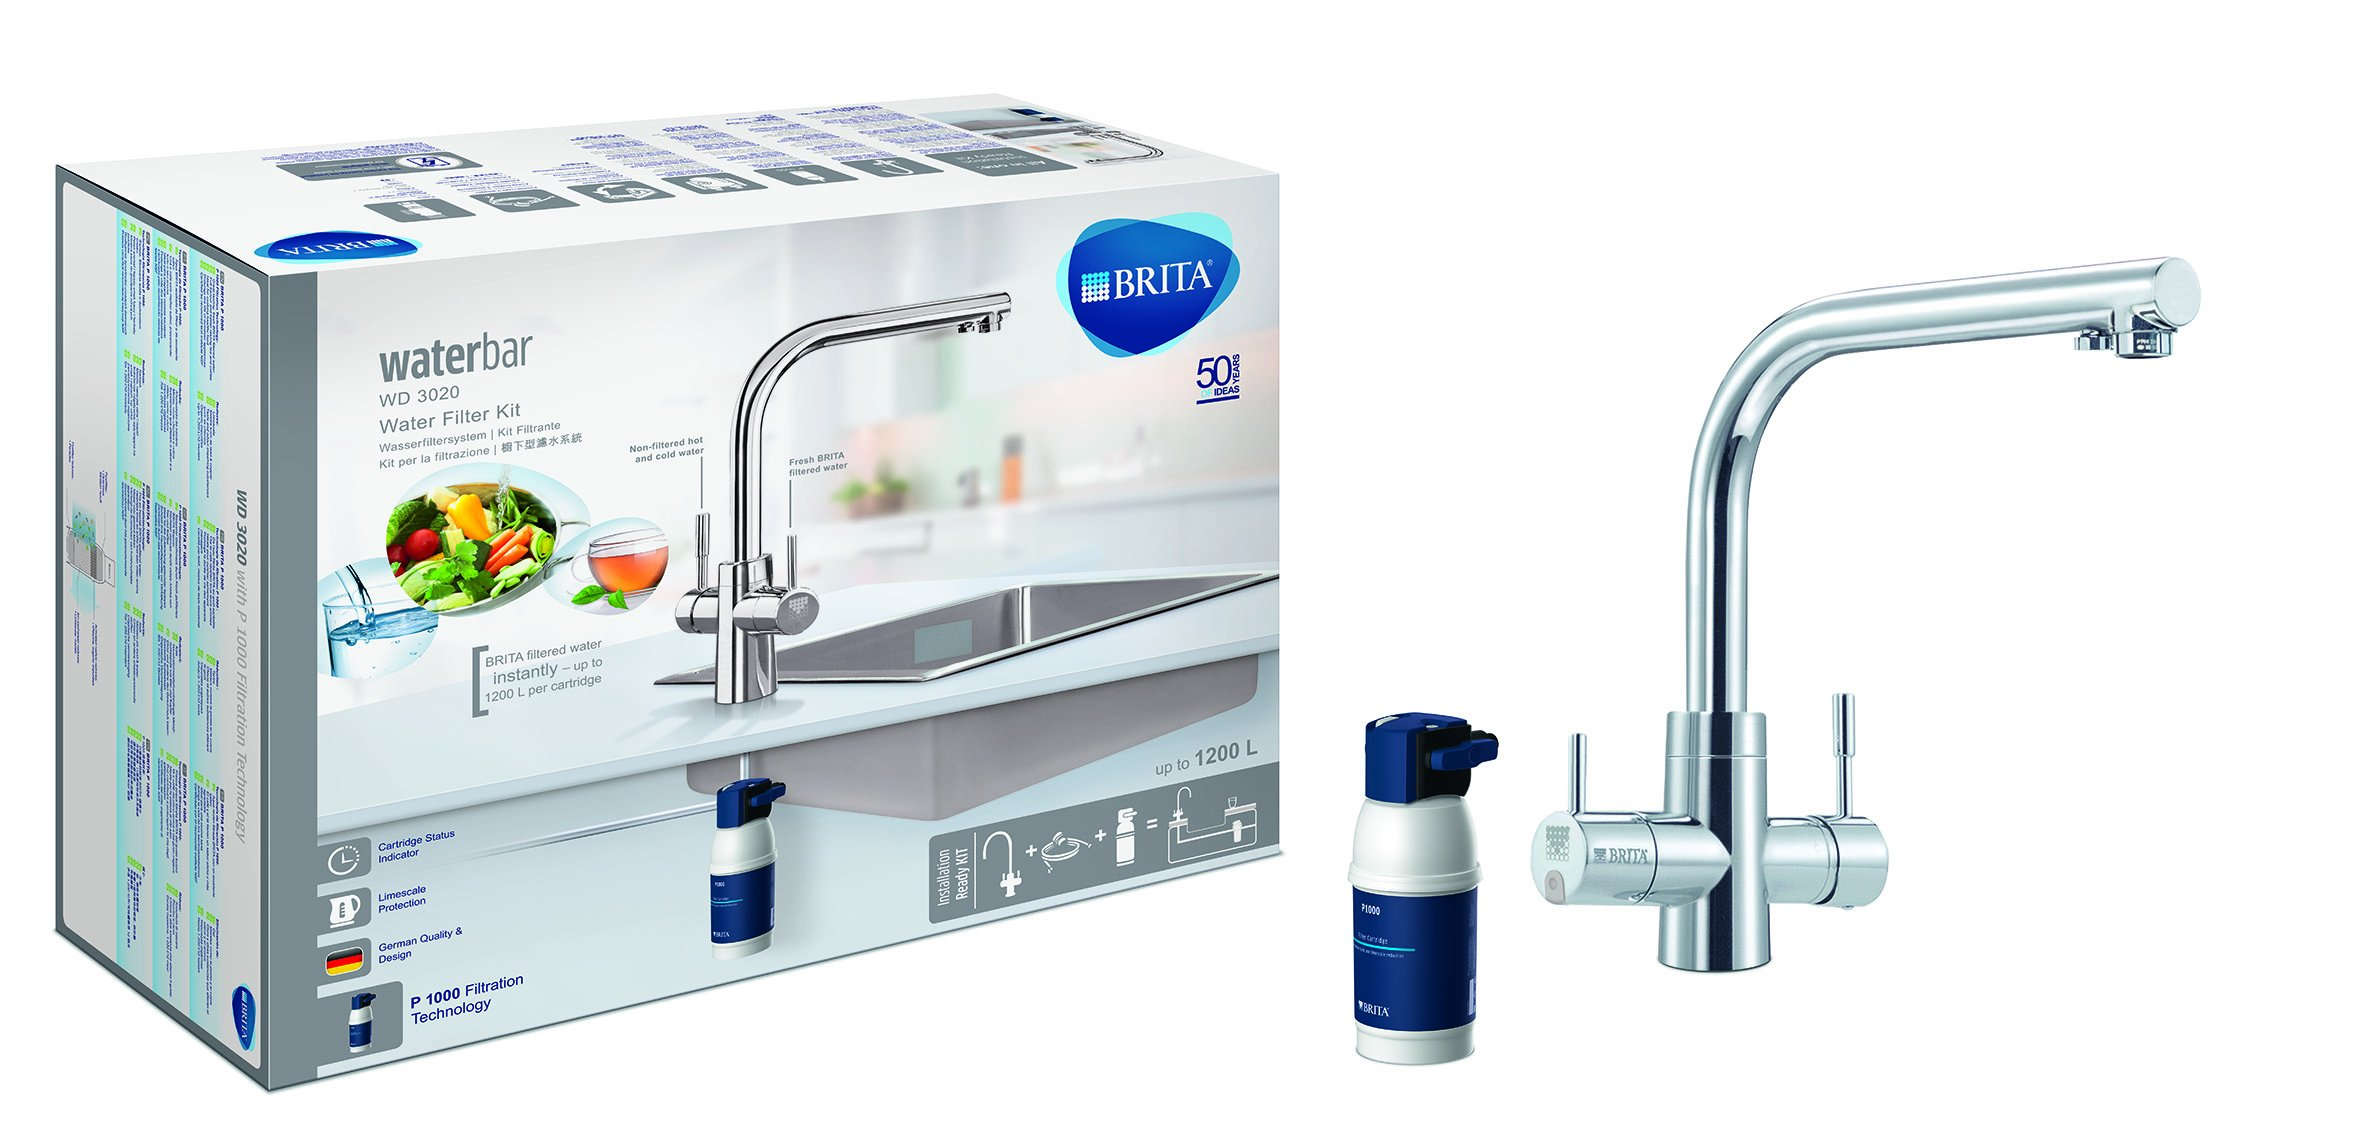 3 in 1 Filtration System Brita Wd3020